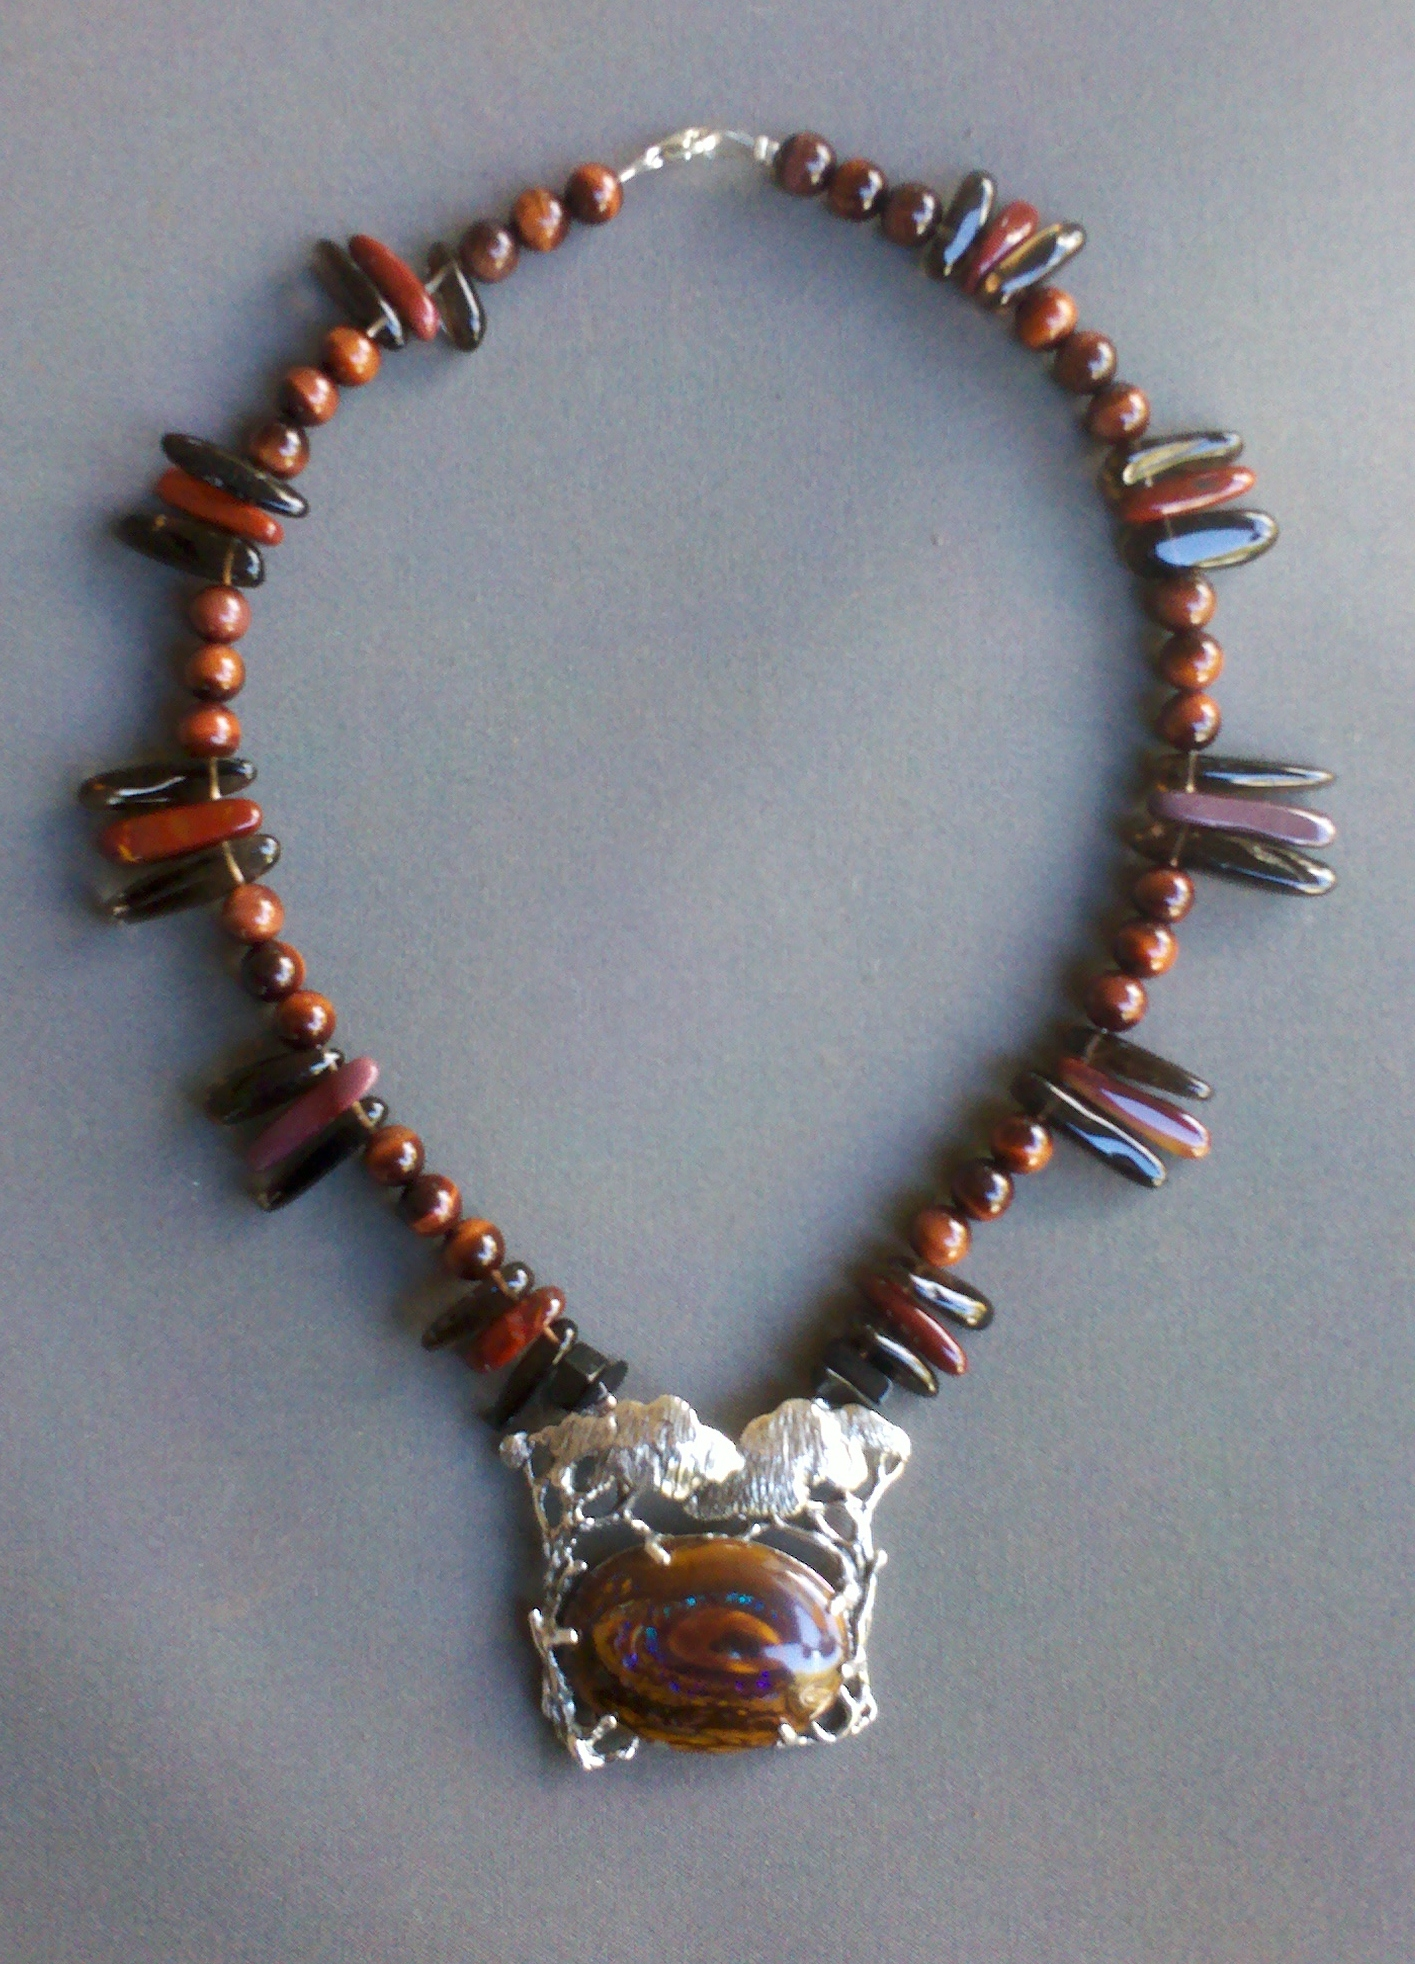 Boulder Opal set in Sterling Silver with Mookaite, Smokey Quartz and Red Tiger Eye Beads